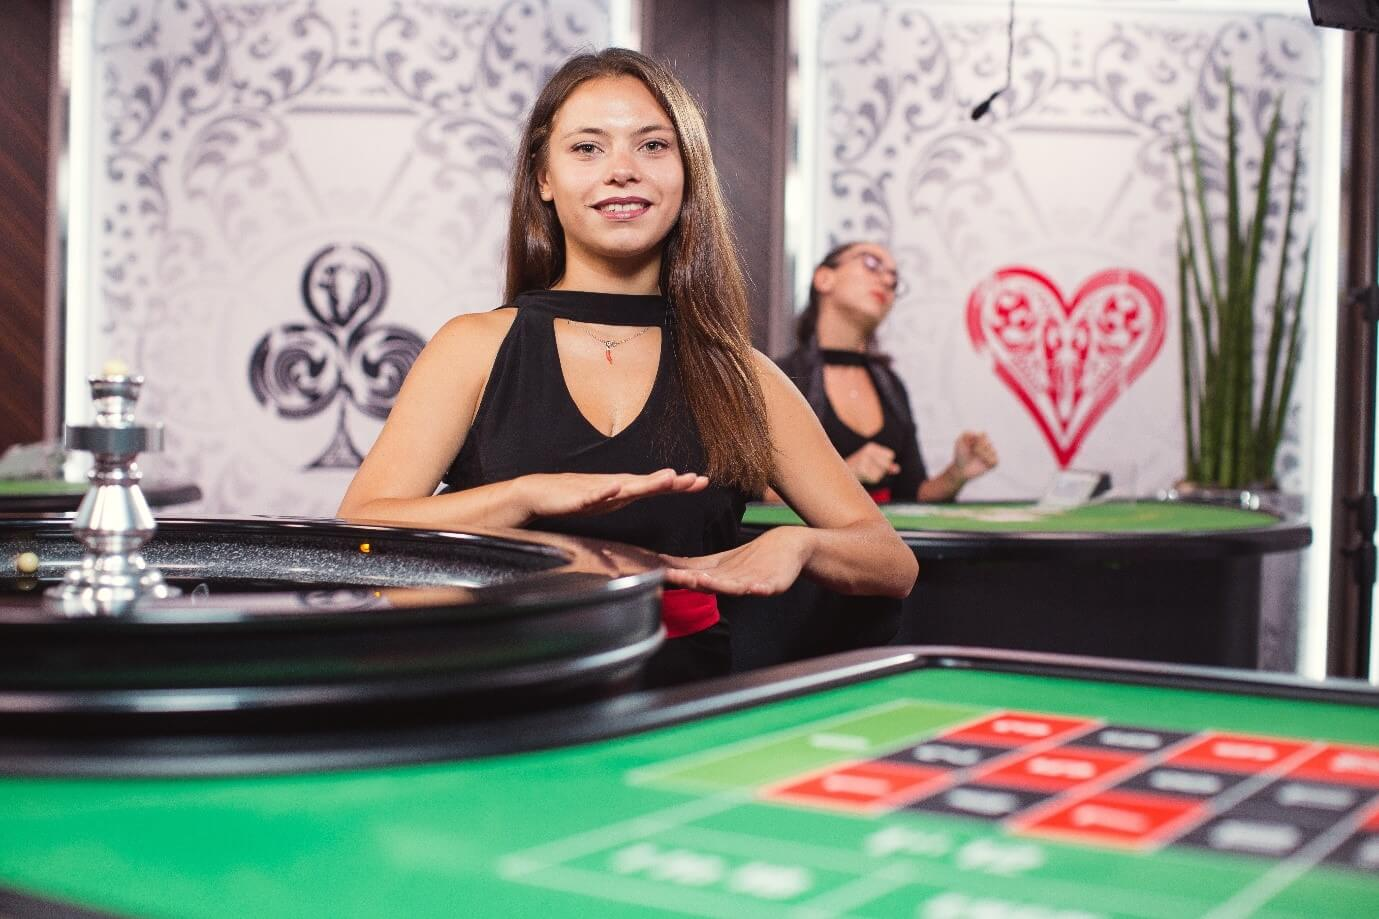 Croupier indicates no more bets at Evolution Gaming live roulette casino table